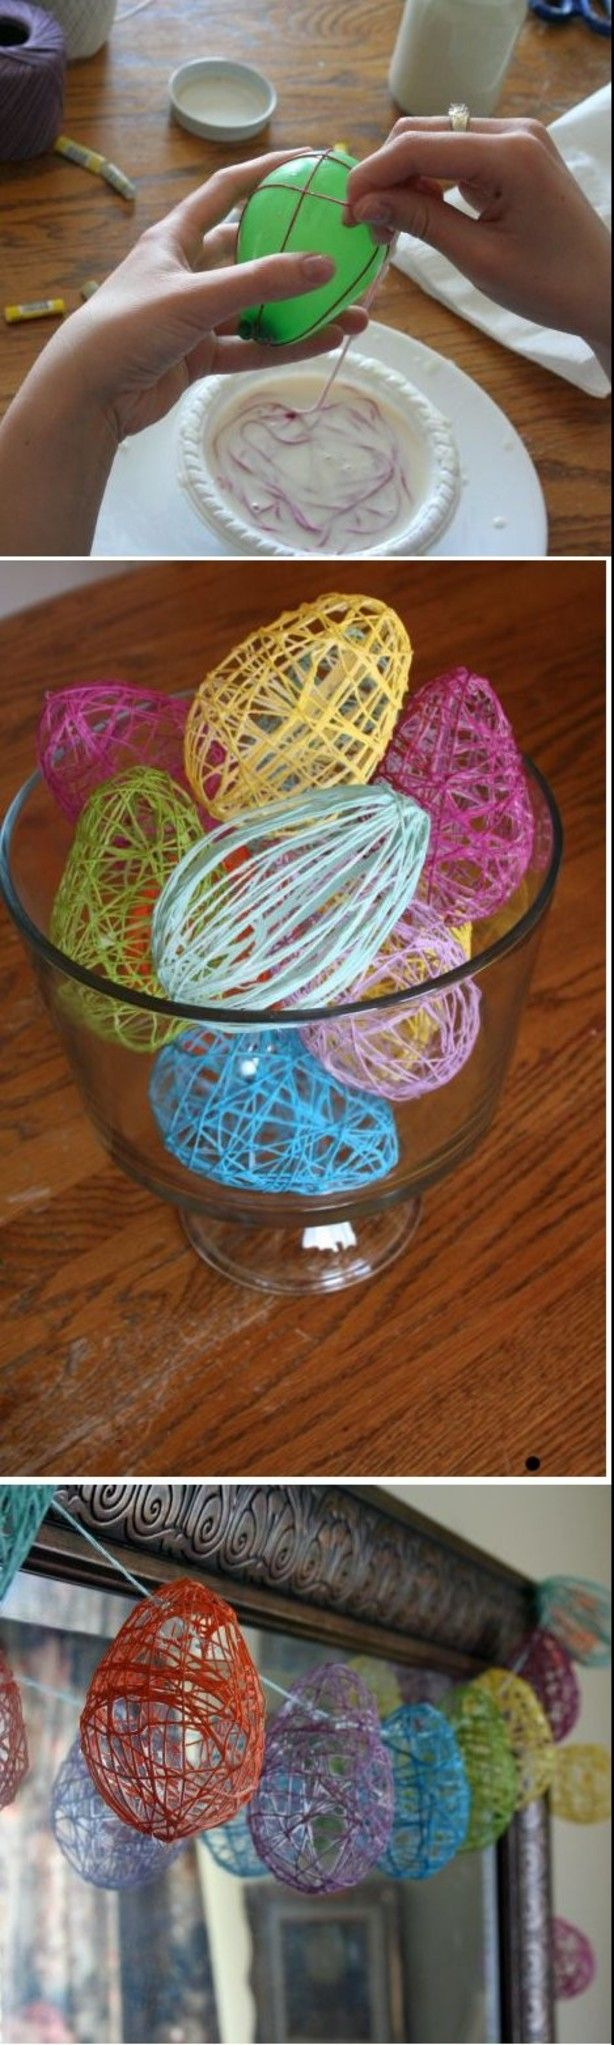 Soak yarn in glue and wrap on balloon, let dry then pop the balloon!